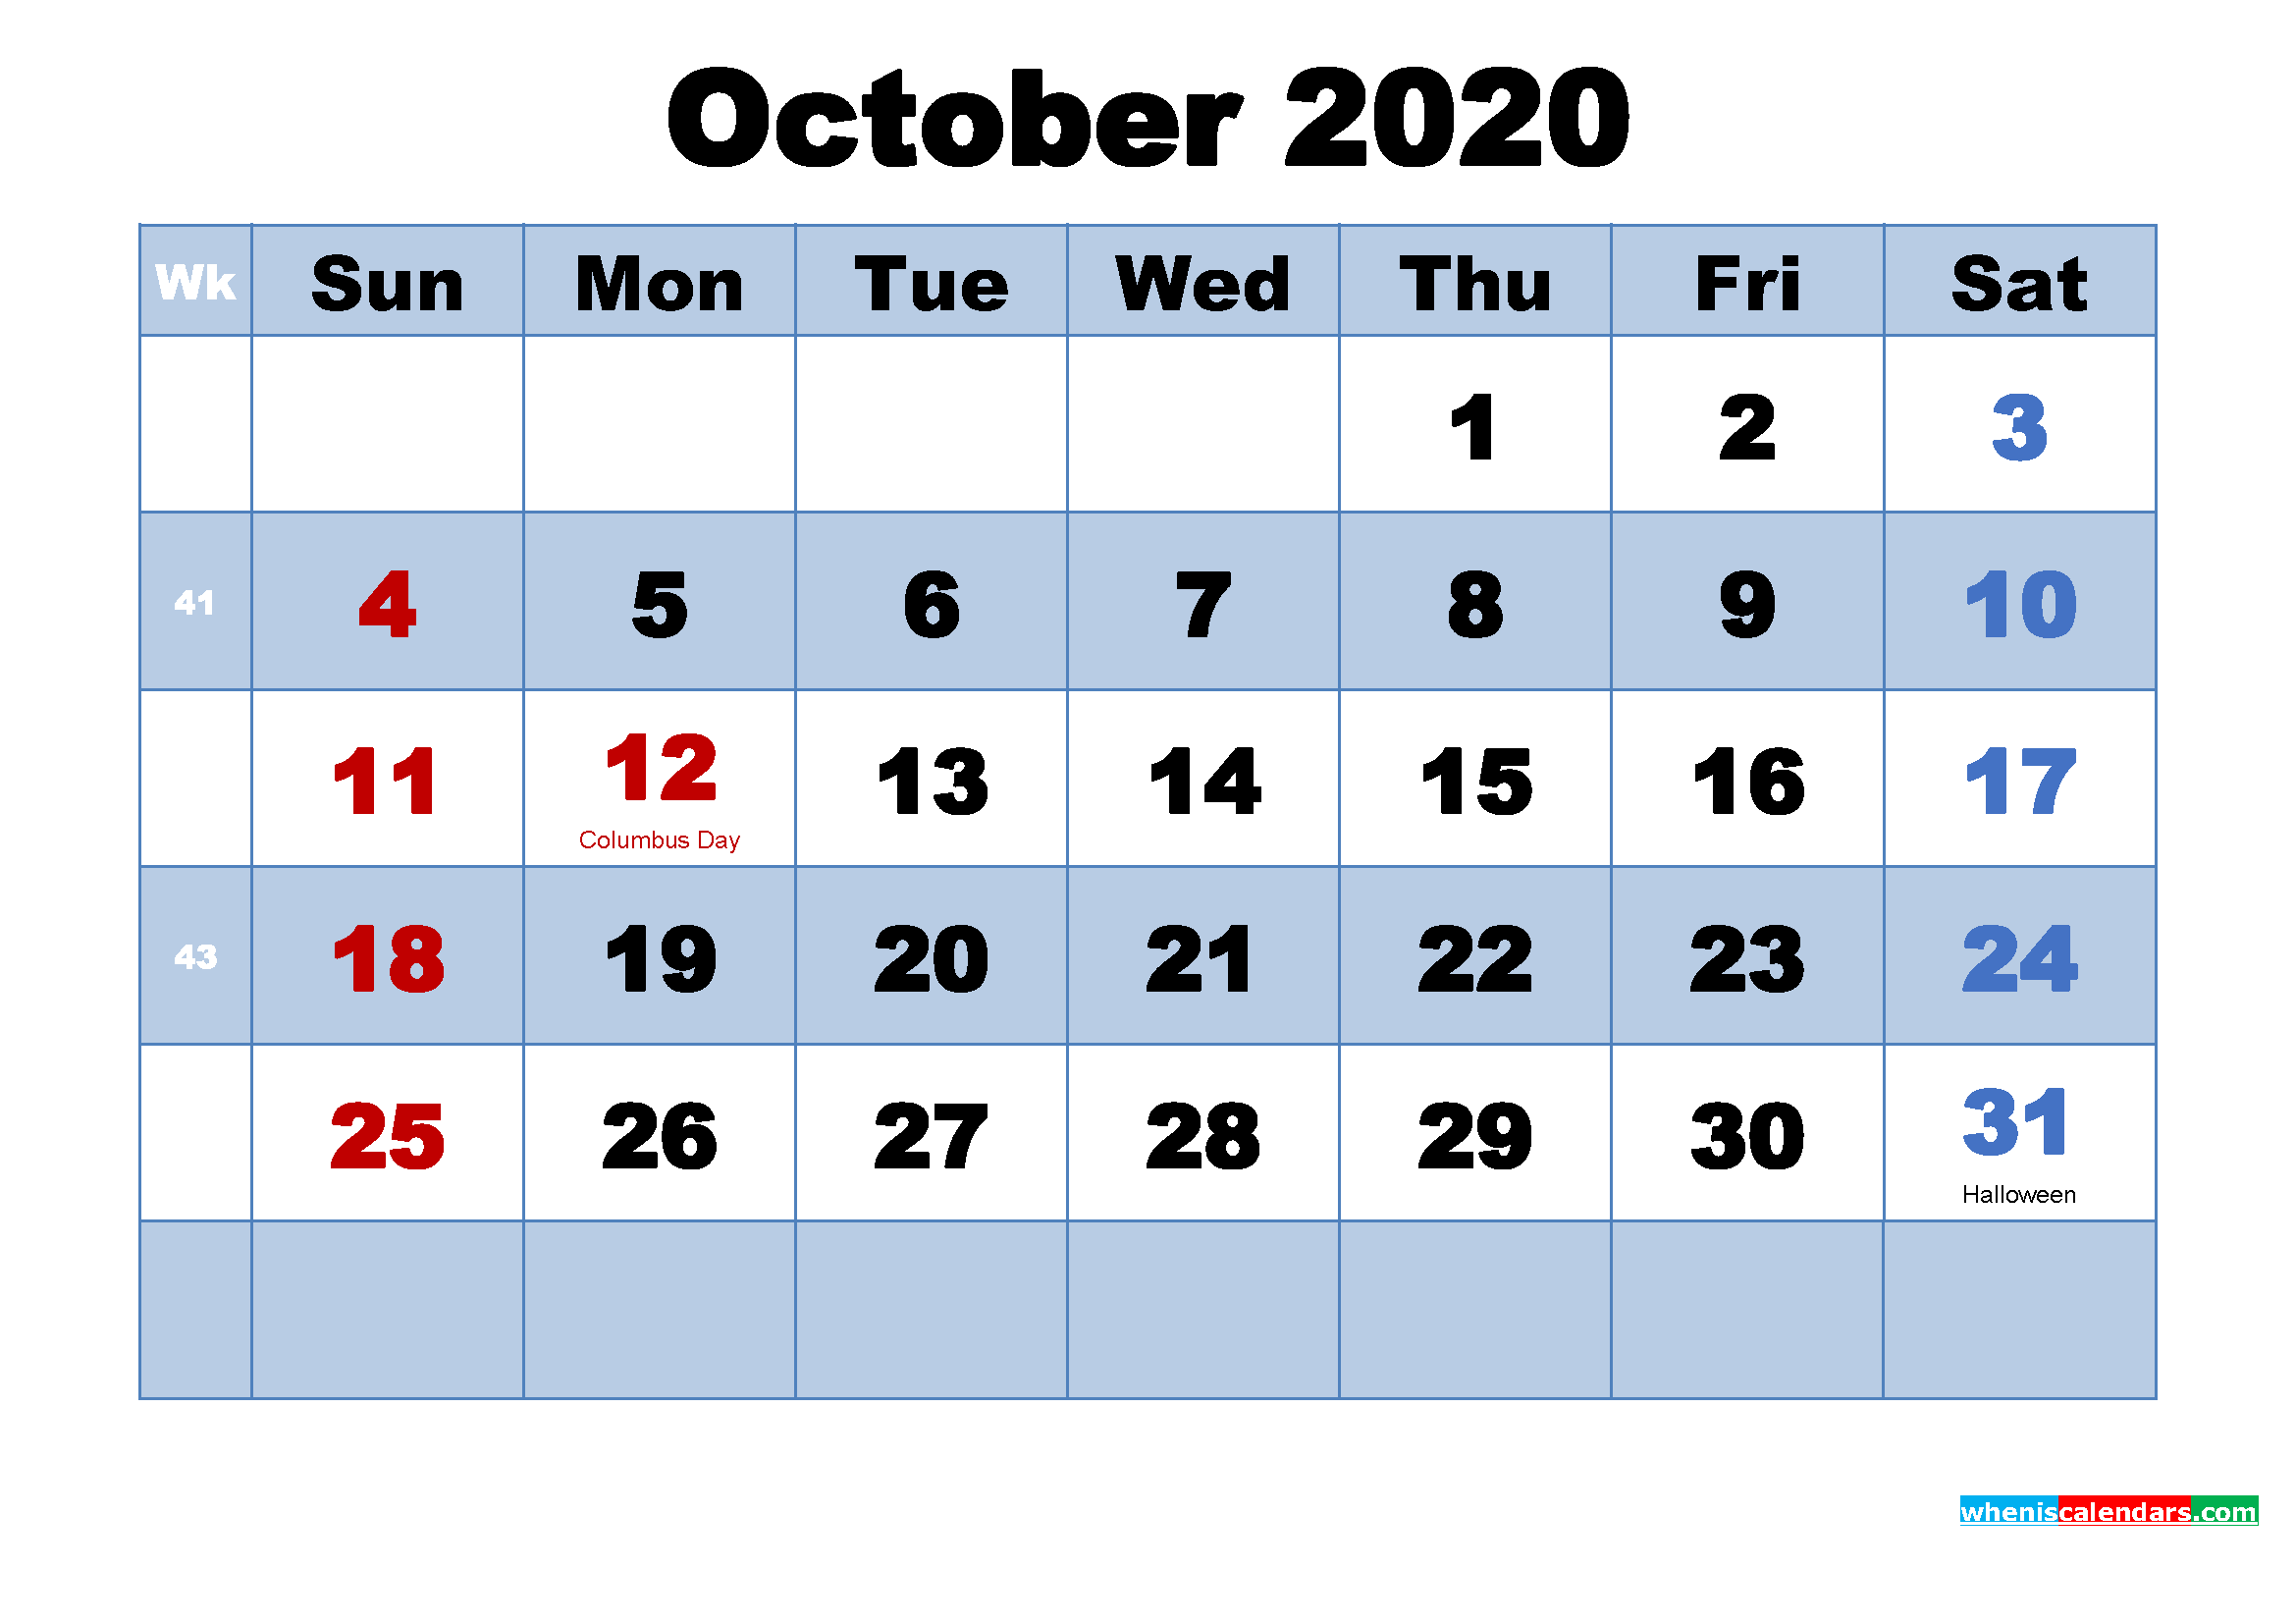 October 2020 Calendar with Holidays Printable